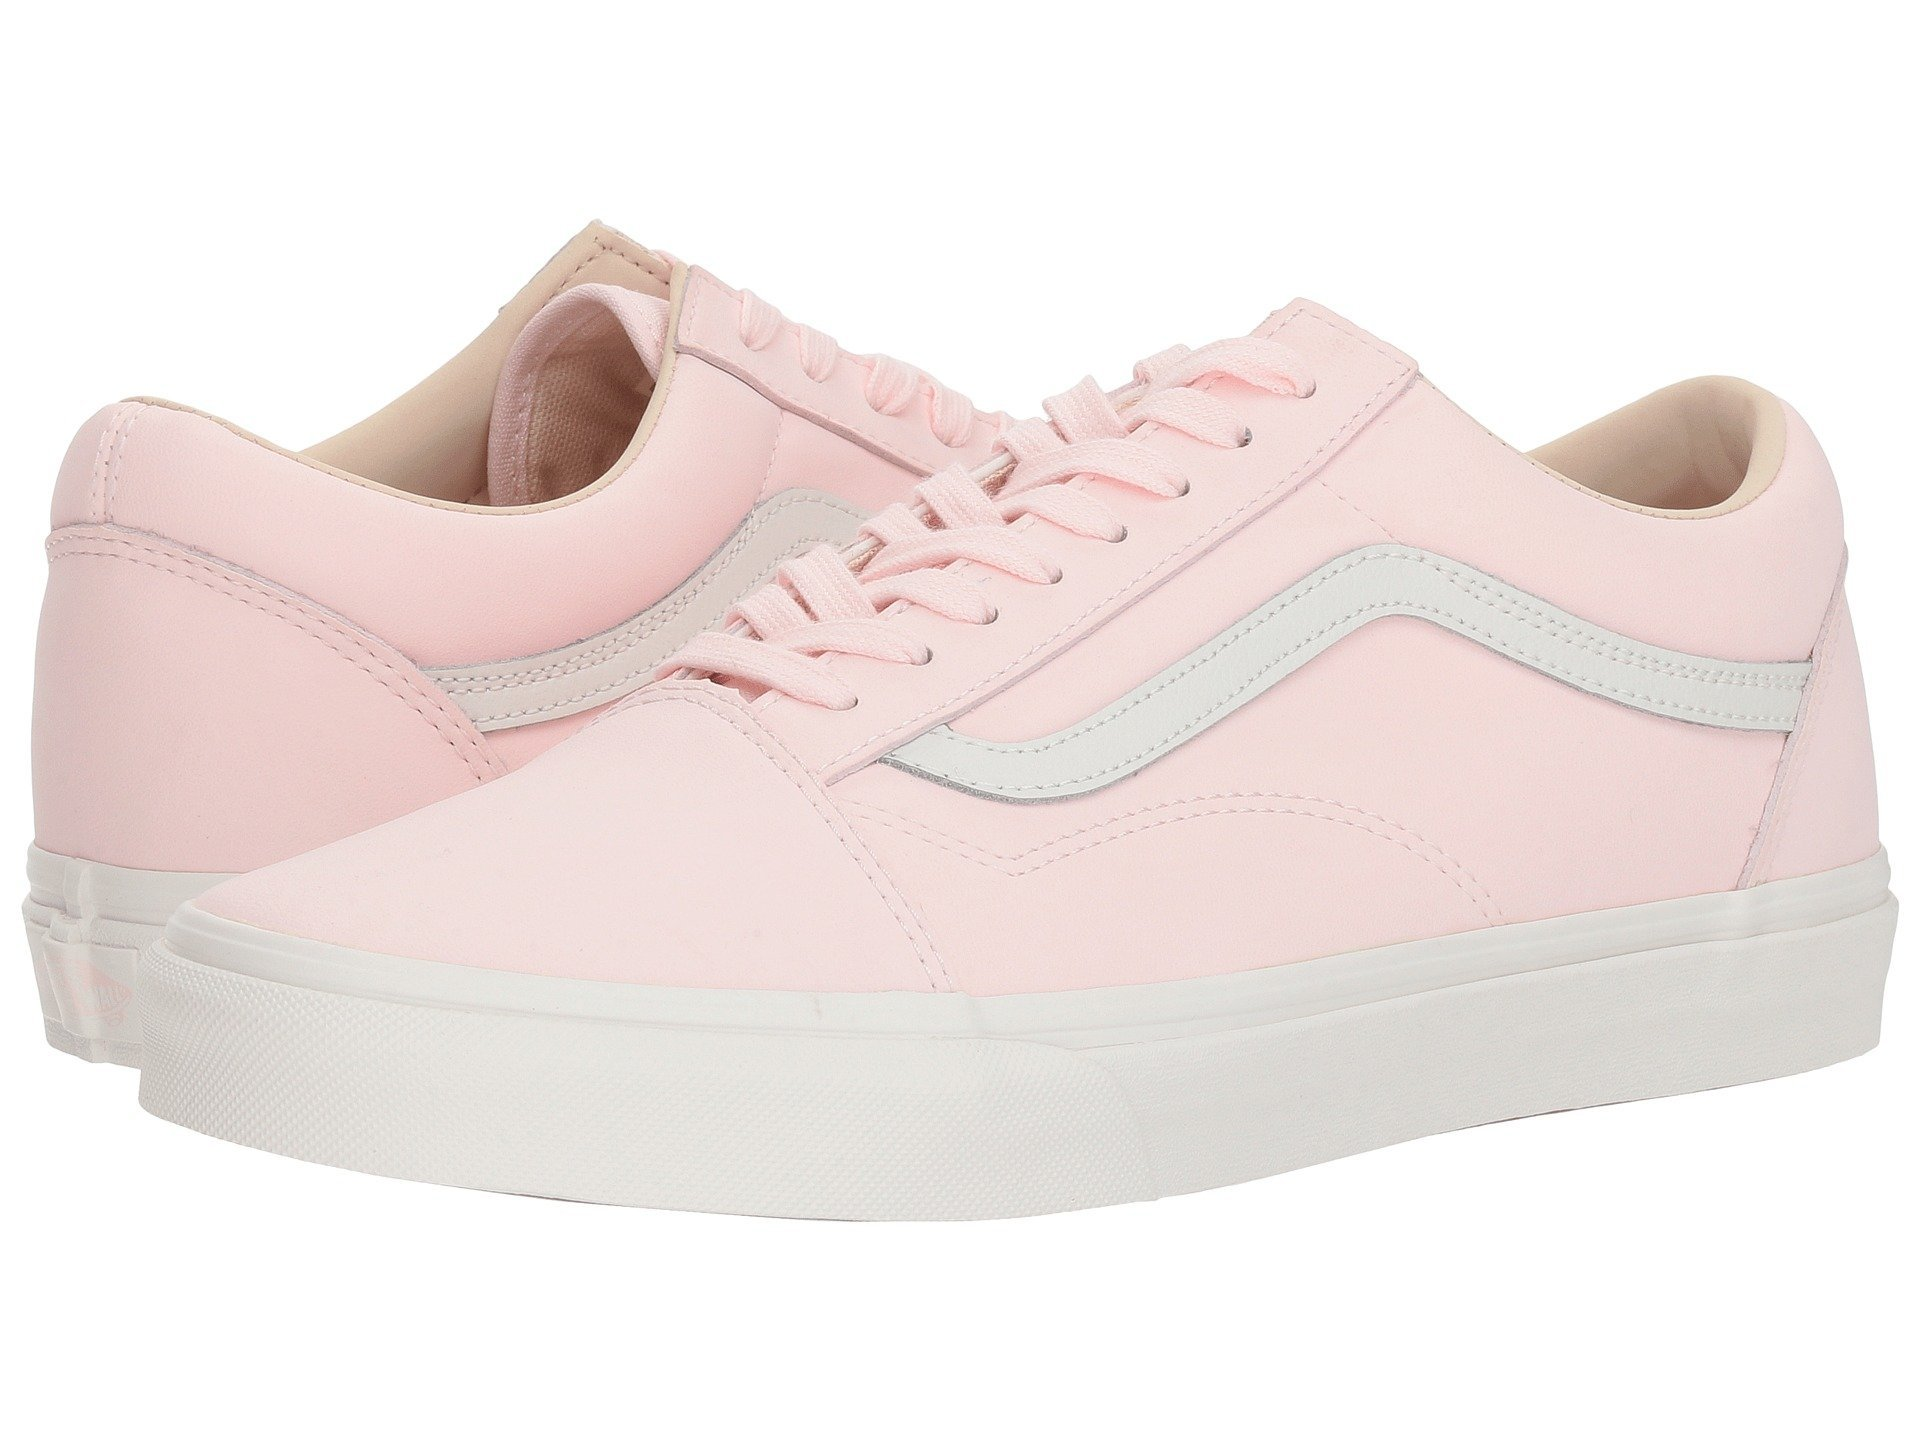 Vans Buck Old Skool Unisex Womens Skateboarding-Shoes VN-0A38G1U5W_7 - Pink/True White